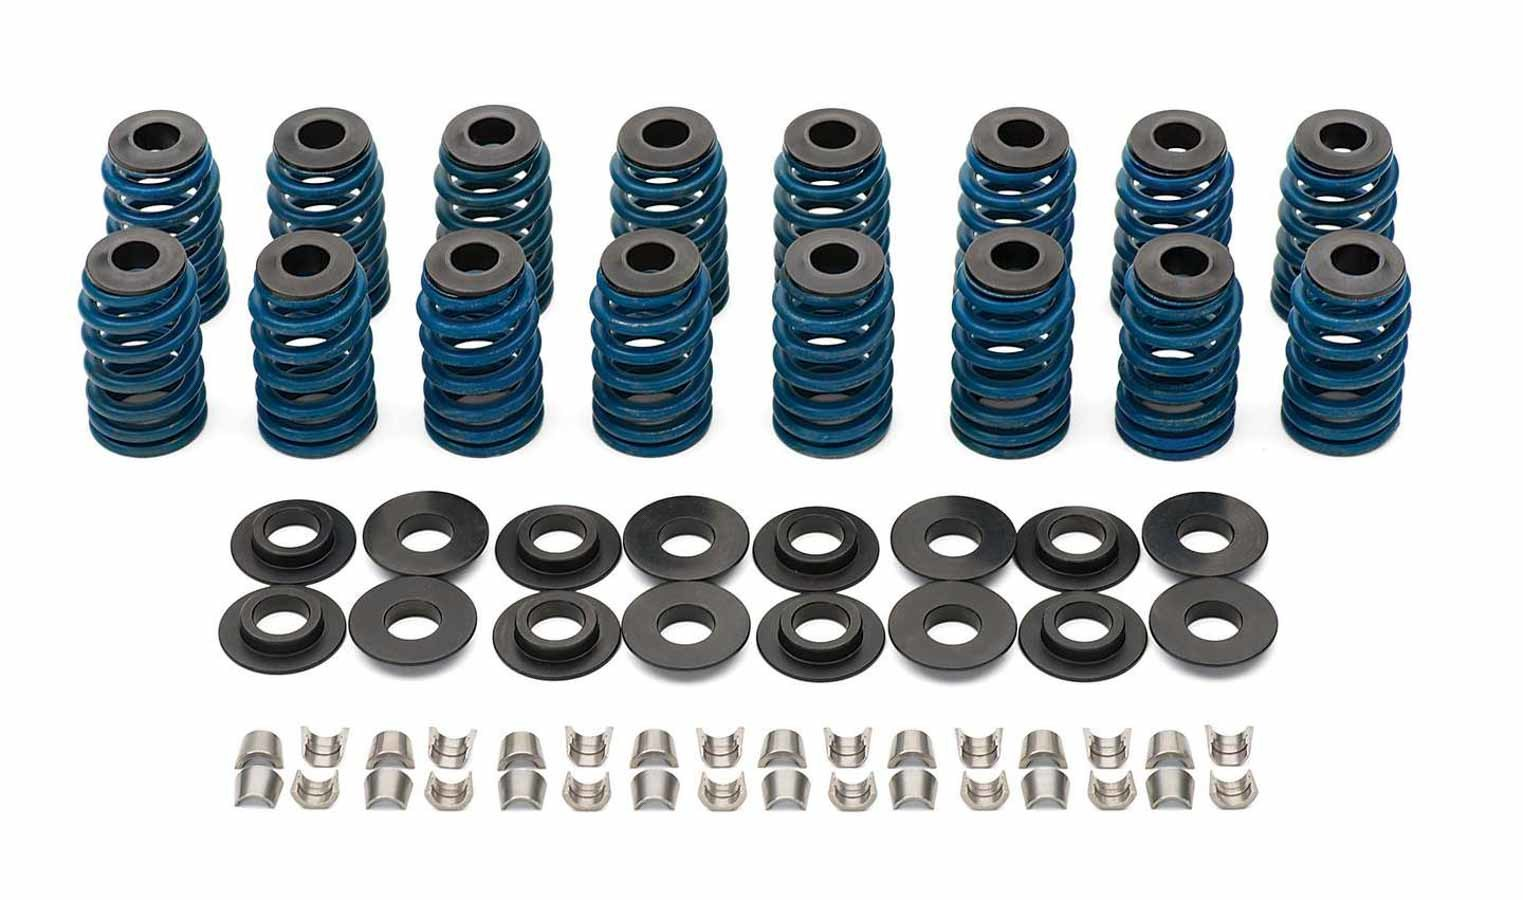 CHEVROLET PERFORMANCE Beehive Valve Spring Kit Conversion Upgrade